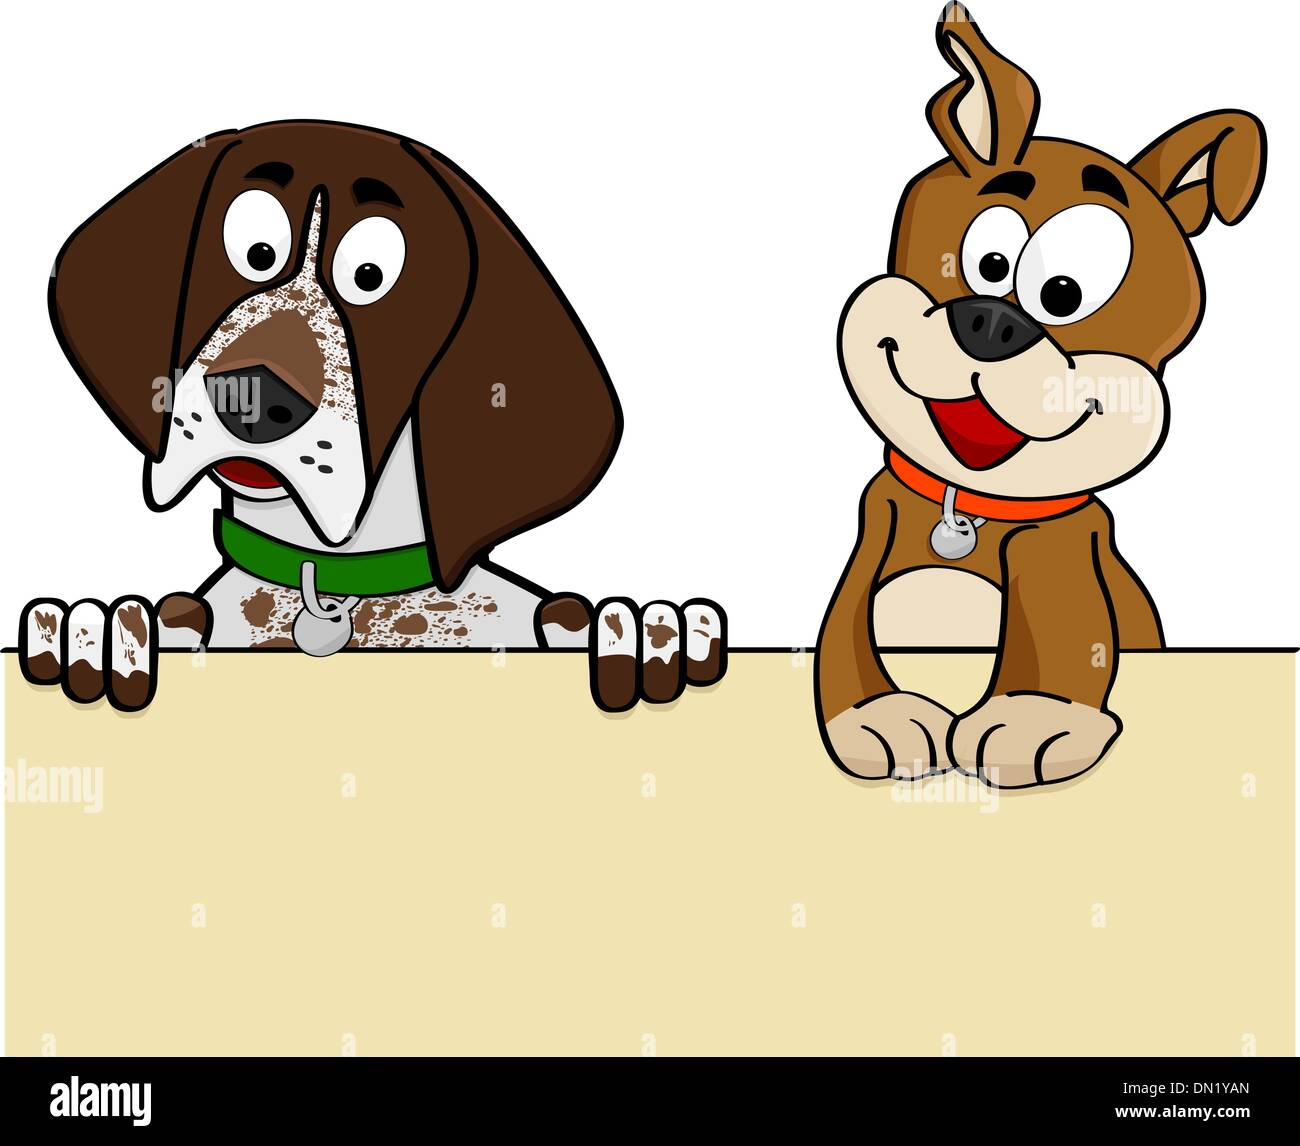 Dogs looking over wall Stock Vector Art & Illustration, Vector Image ...